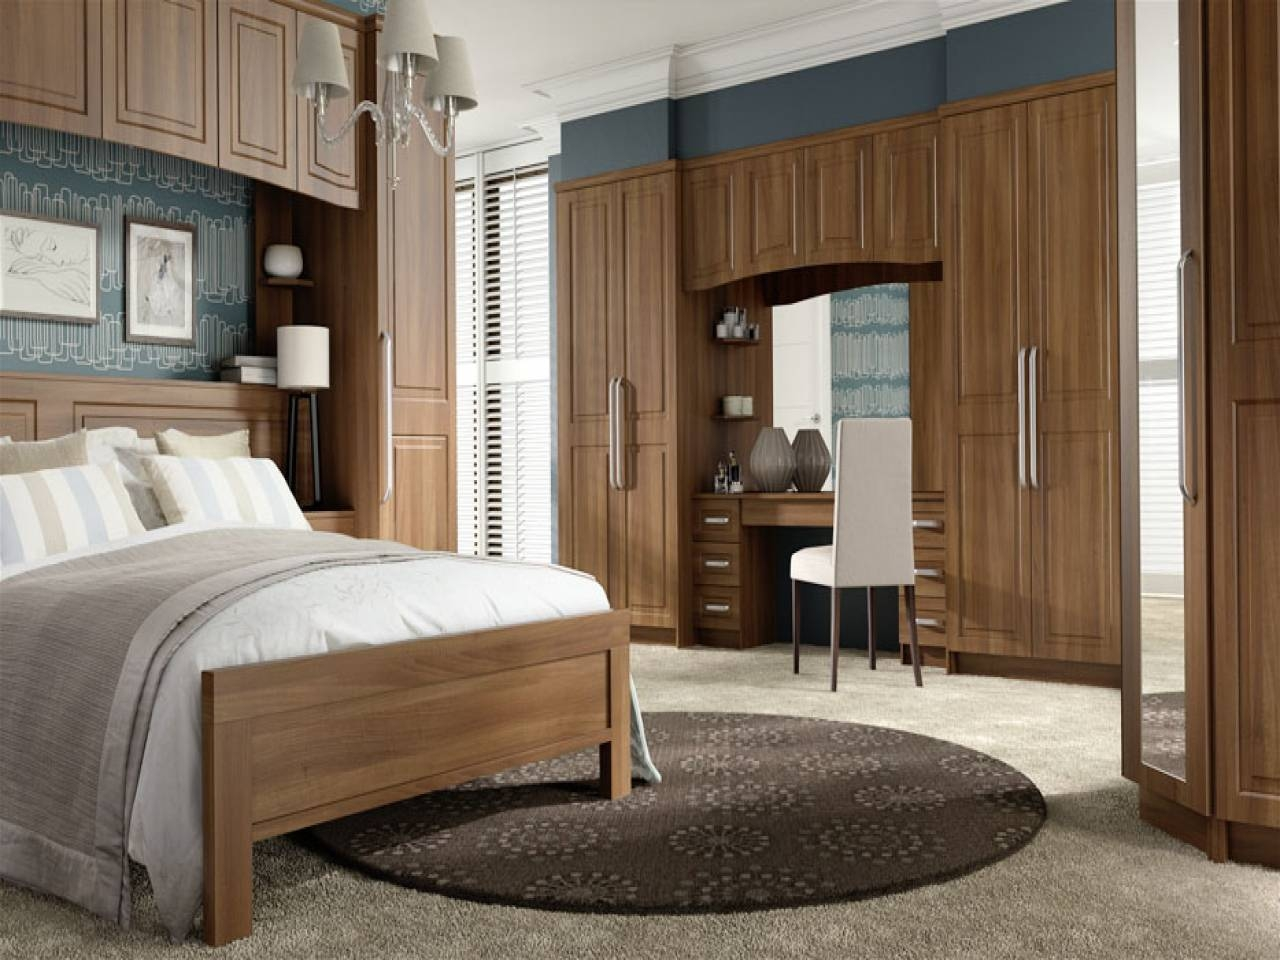 Wardrobe With Built In Dressing Table. Tobacco Walnut Curved for Wardrobes and Dressing Tables (Image 11 of 15)